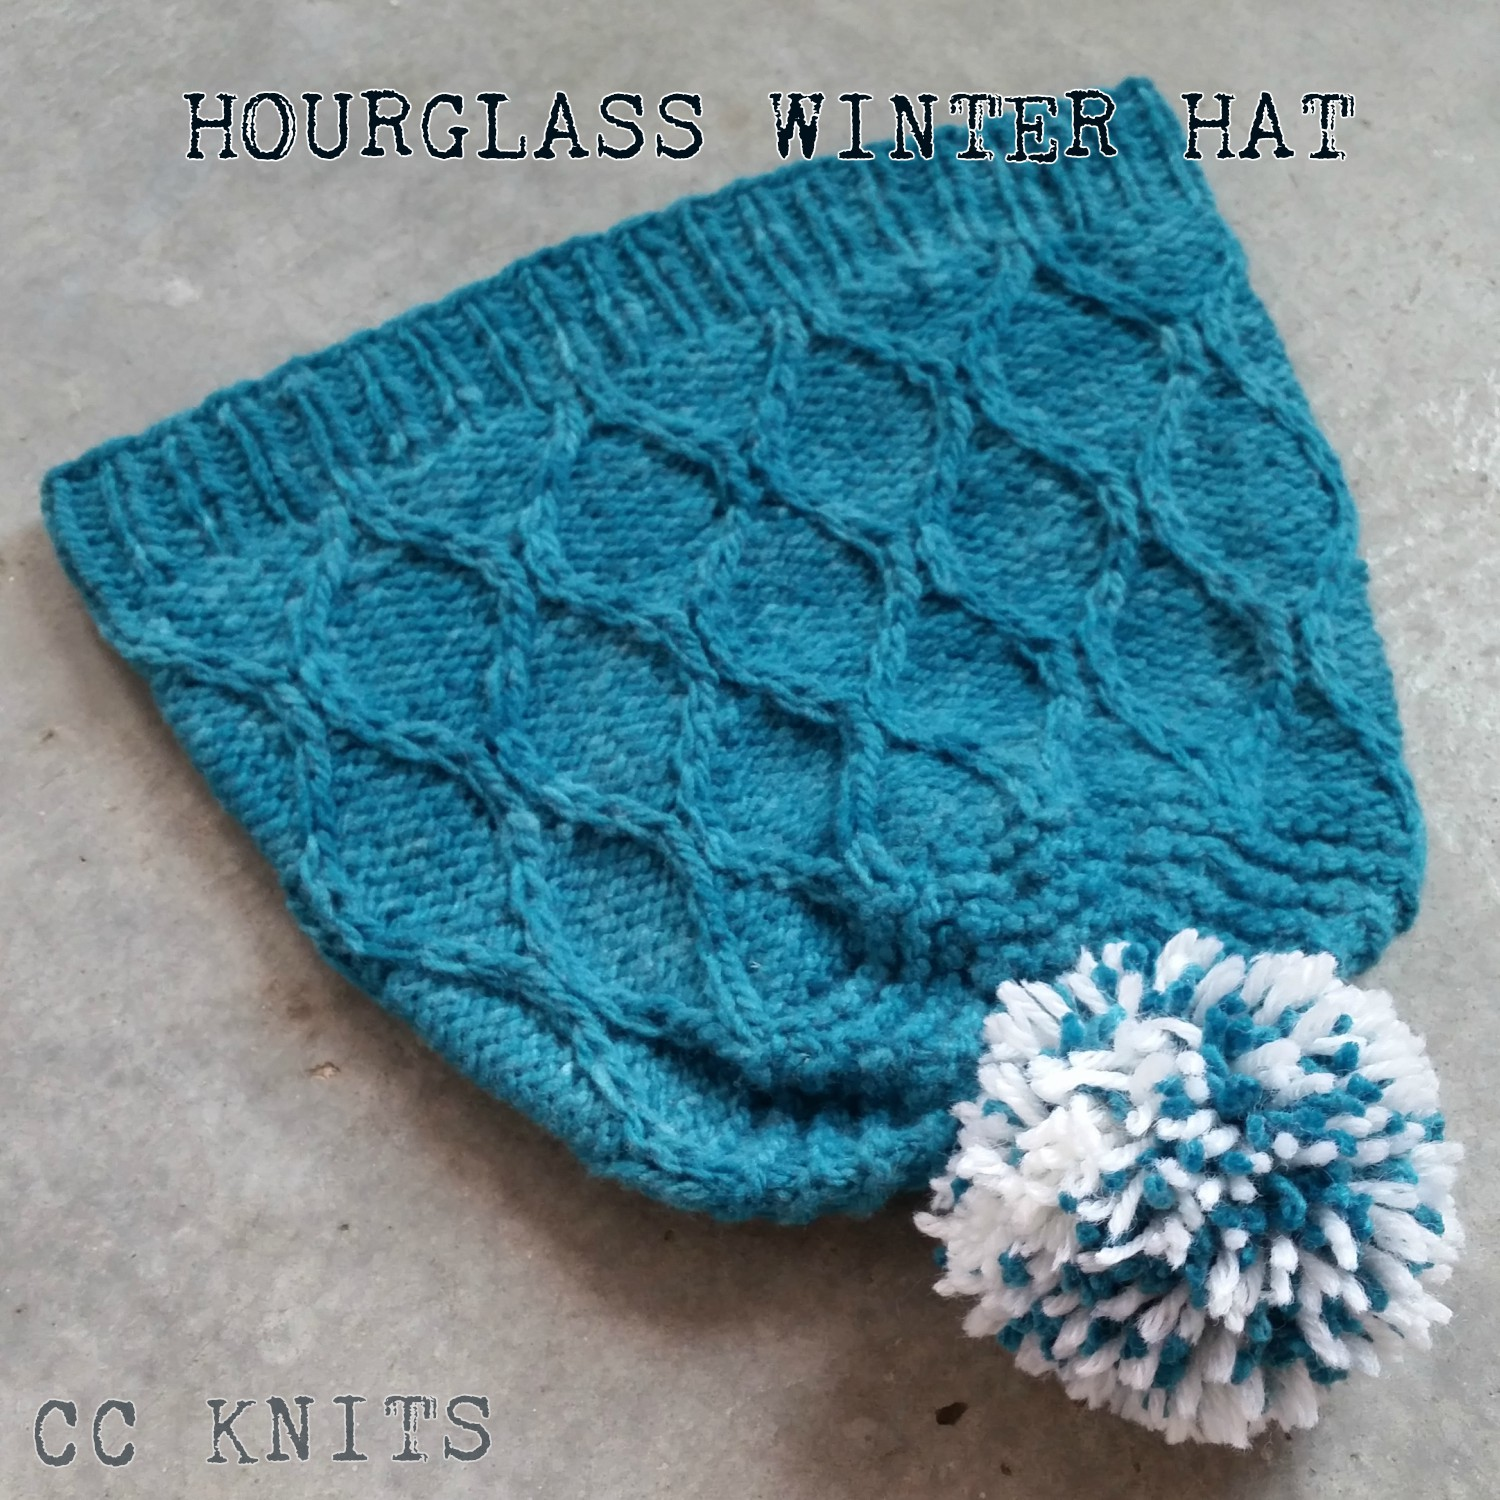 Knitting Picking Up Stitches Purlwise : CC Knits: Hourglass Winter Hat (or My First Published Knitting Pattern)